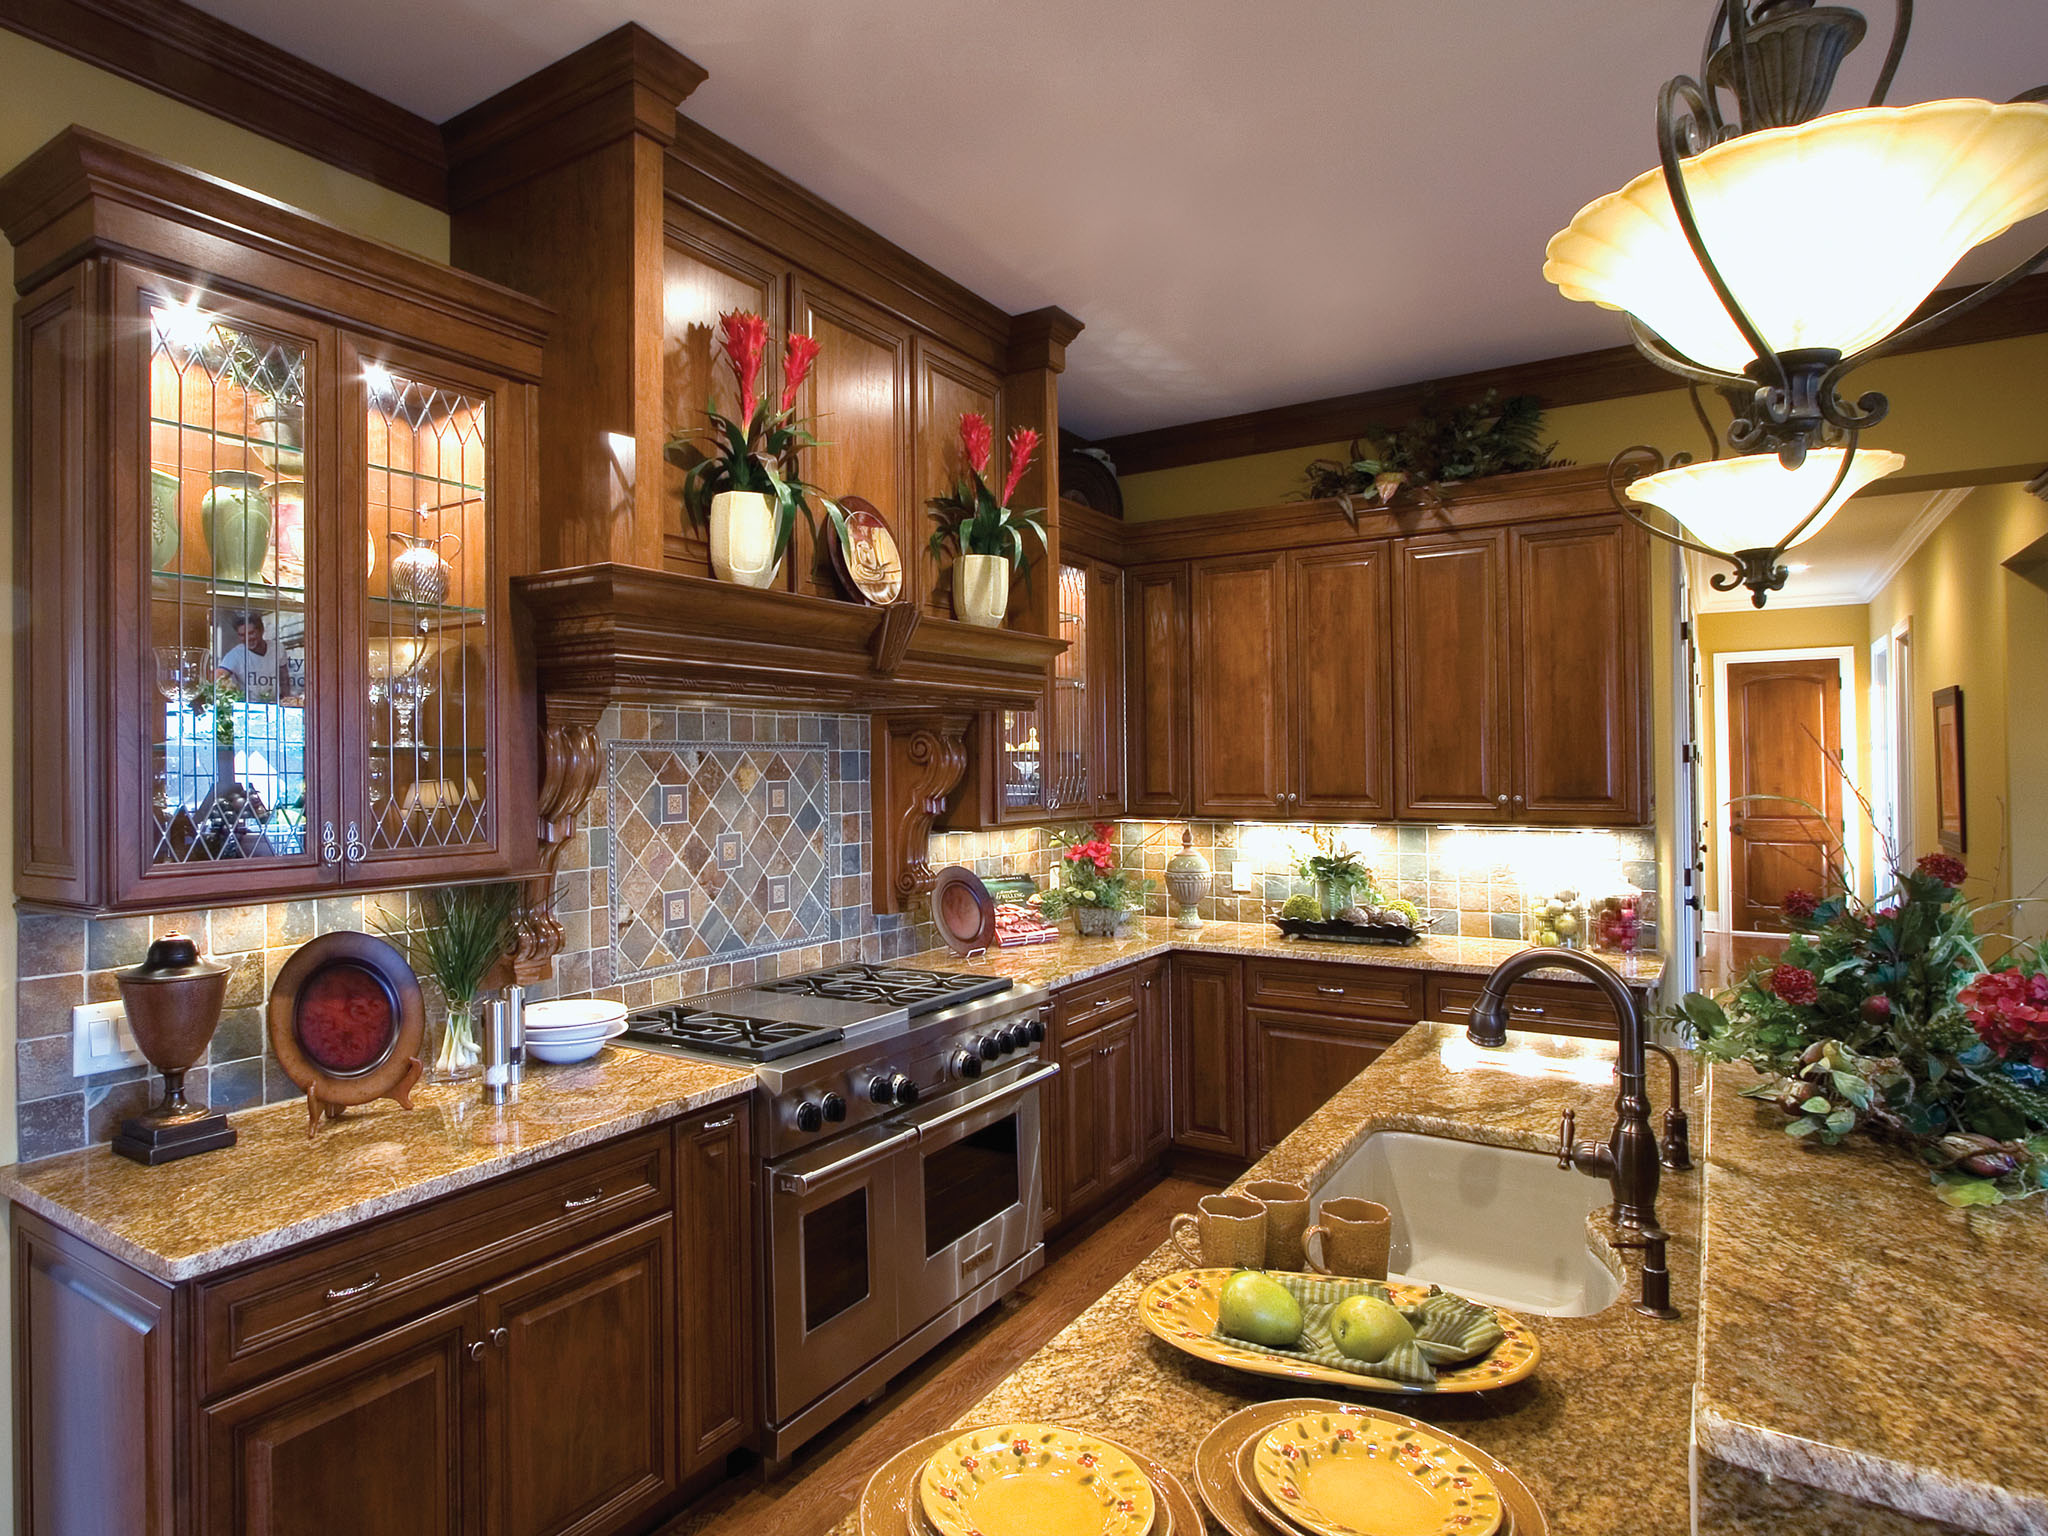 Kitchen Remodel Kitchen Remodeling Done Right Halo Construction Services